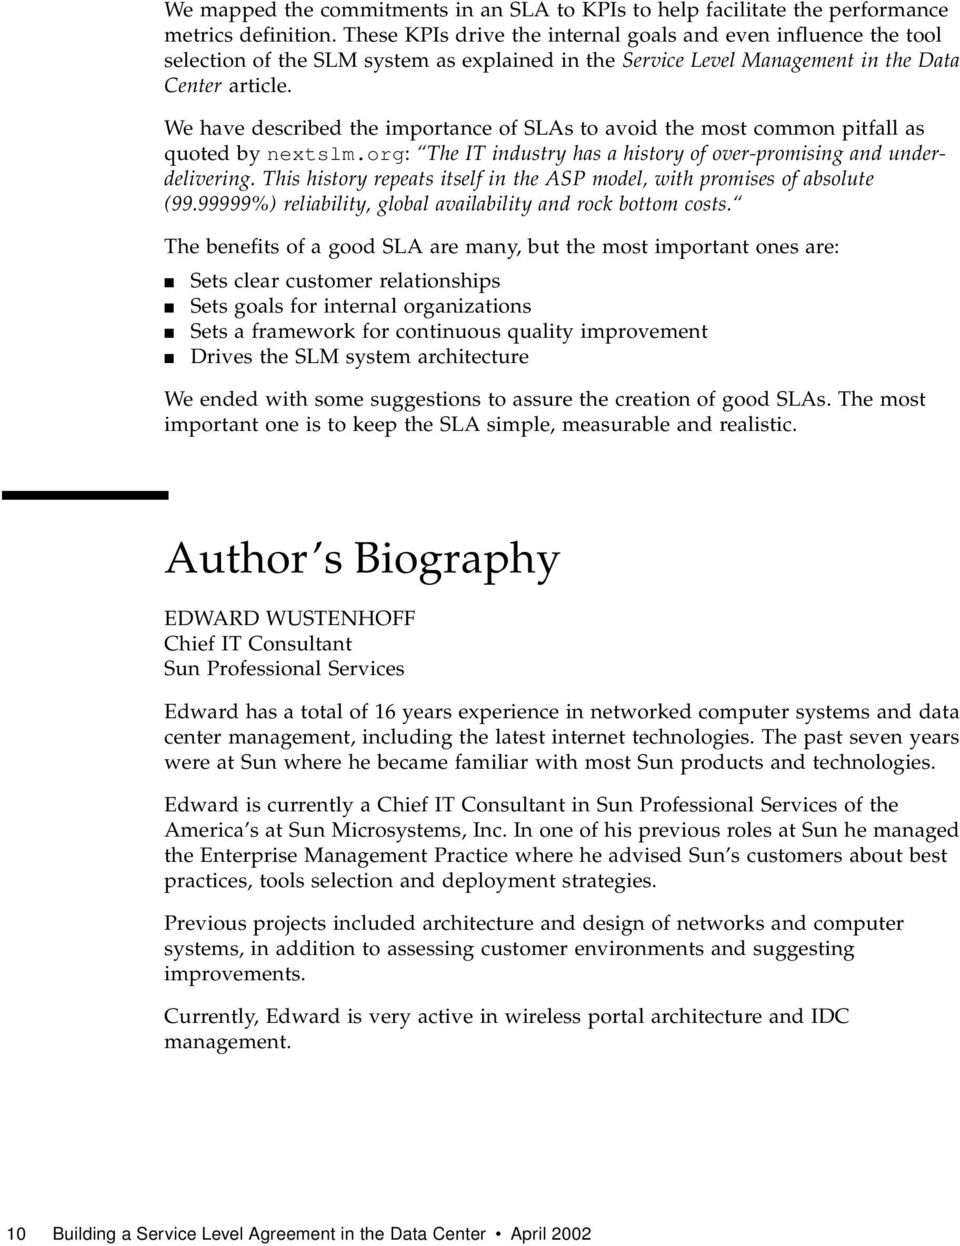 Service Level Agreement in the Data Center - PDF